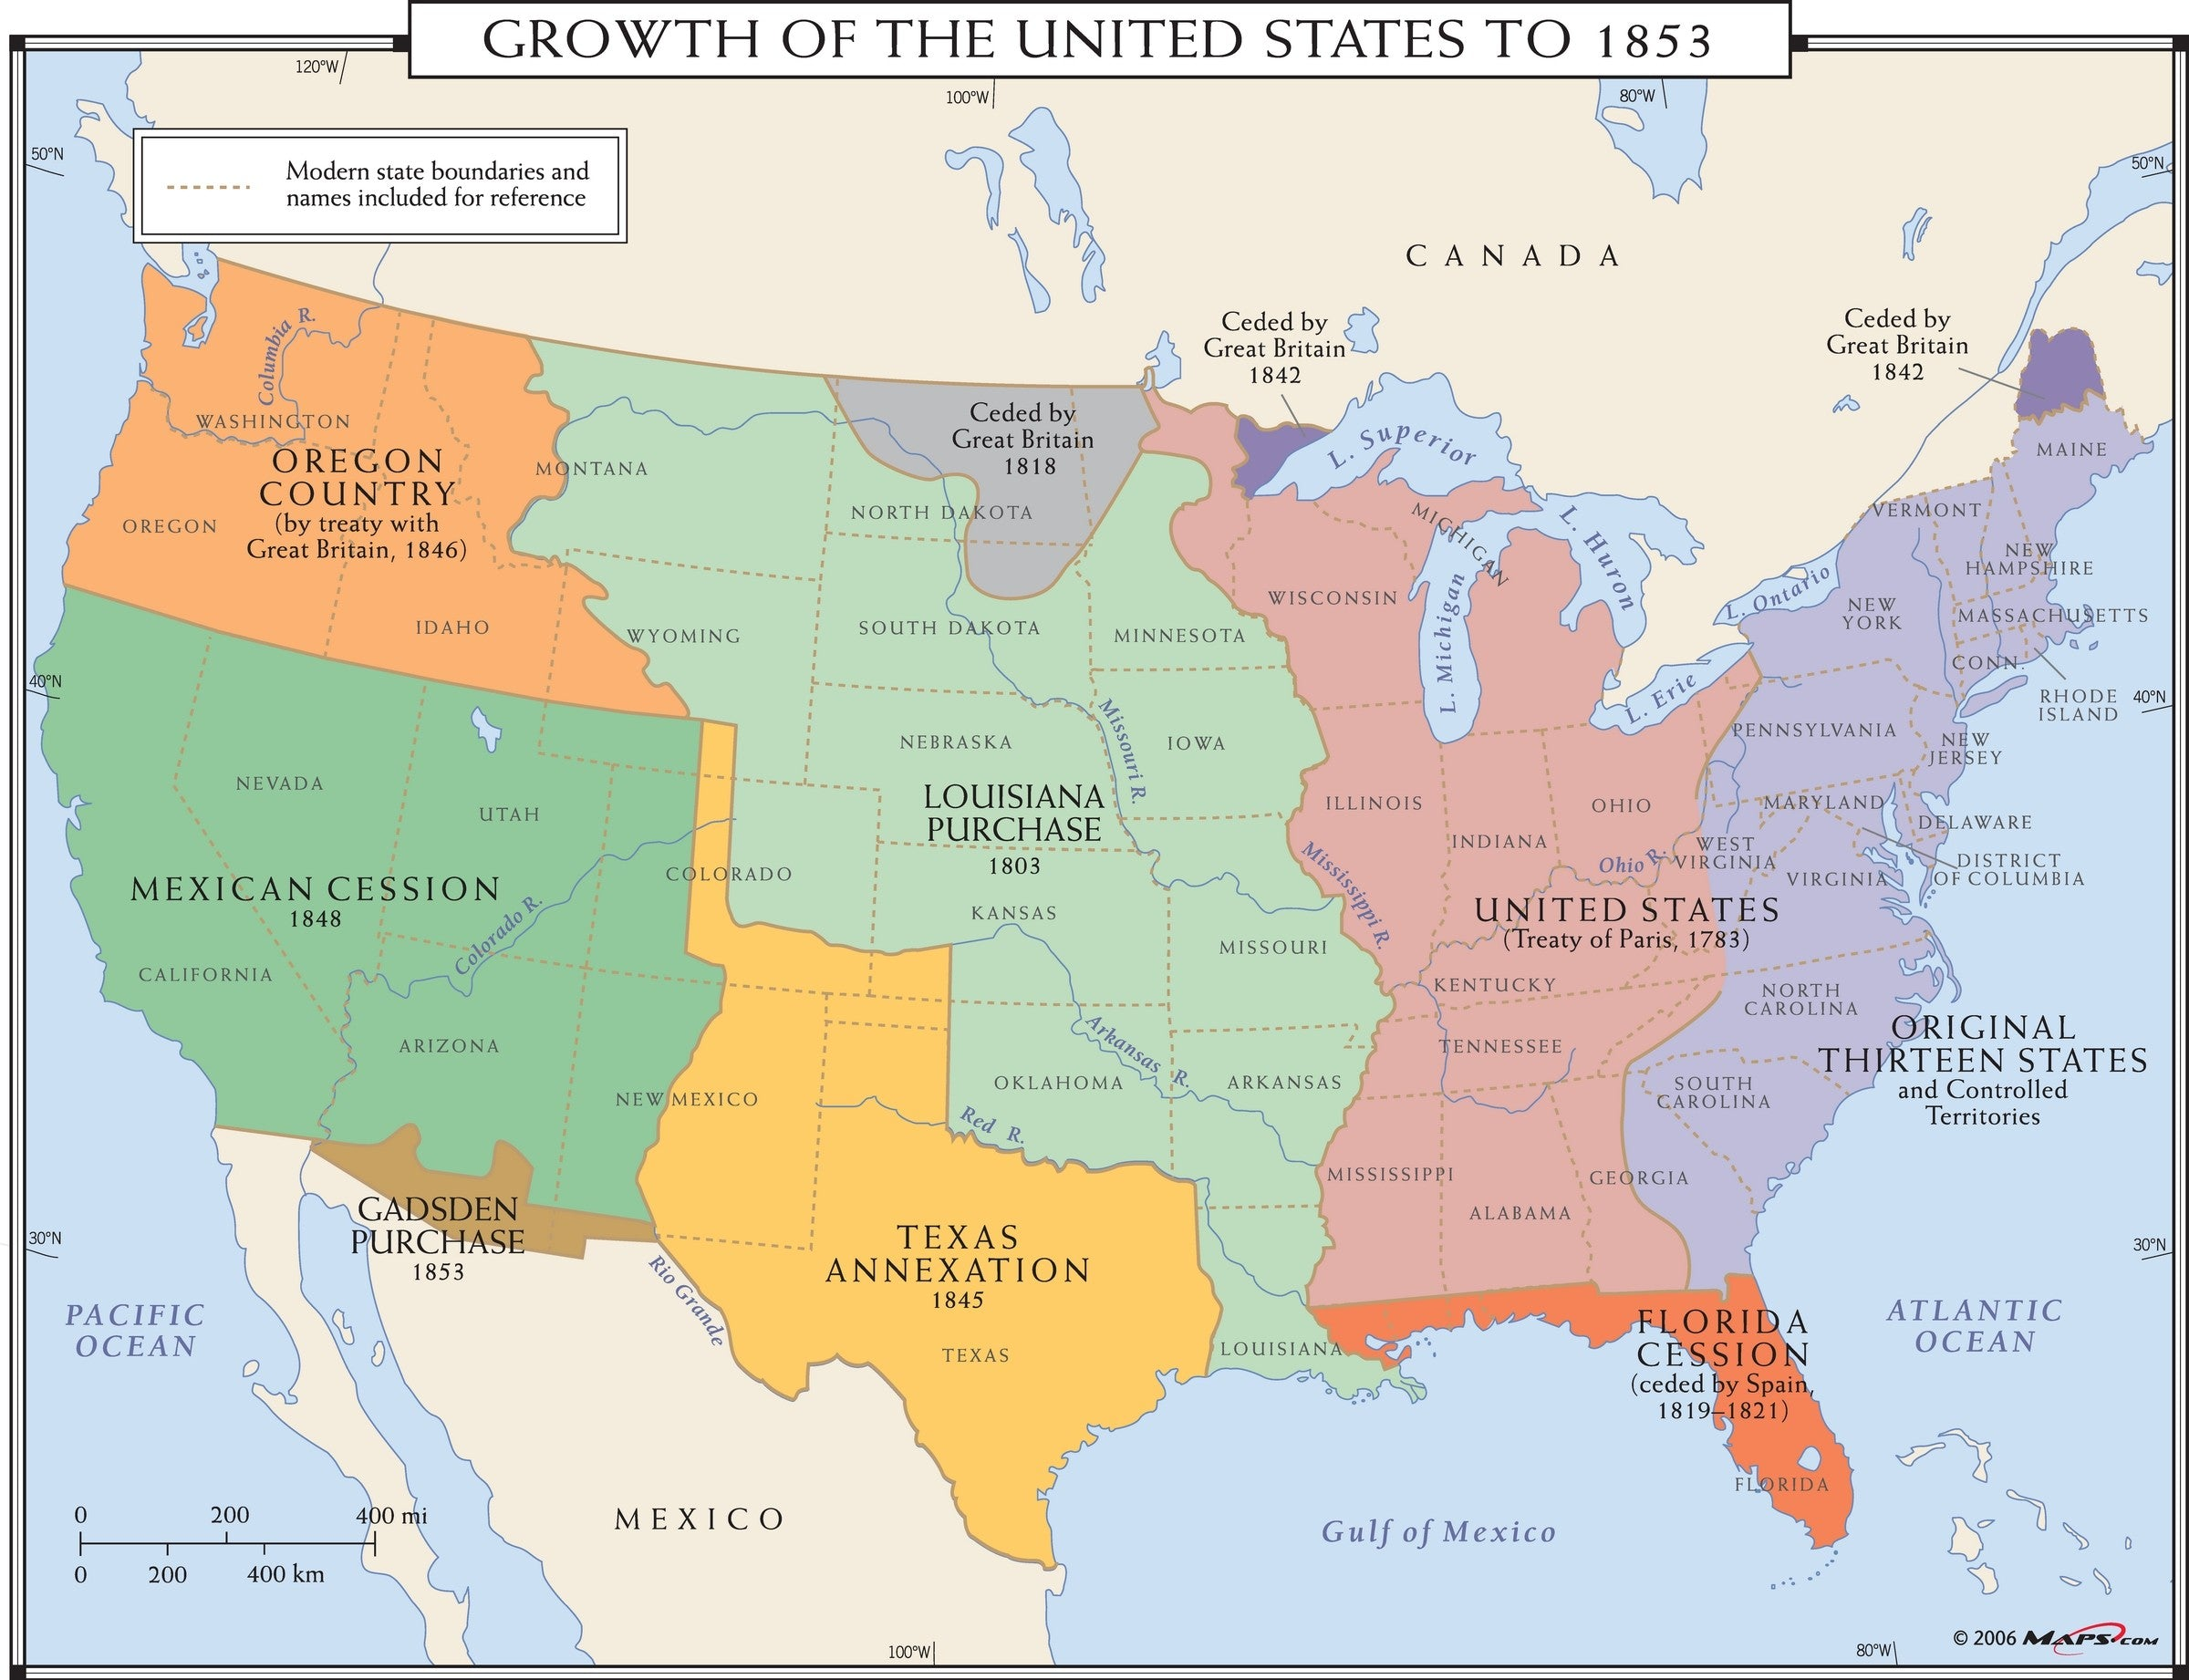 Growth of the United States to 1853 Wall Map on europe map 1848, united states presidential election 1848, united states of america, california map 1848, united states in 1846, mexican cession map 1848, united states elevation, us history map 1848, united states borders before 1848,